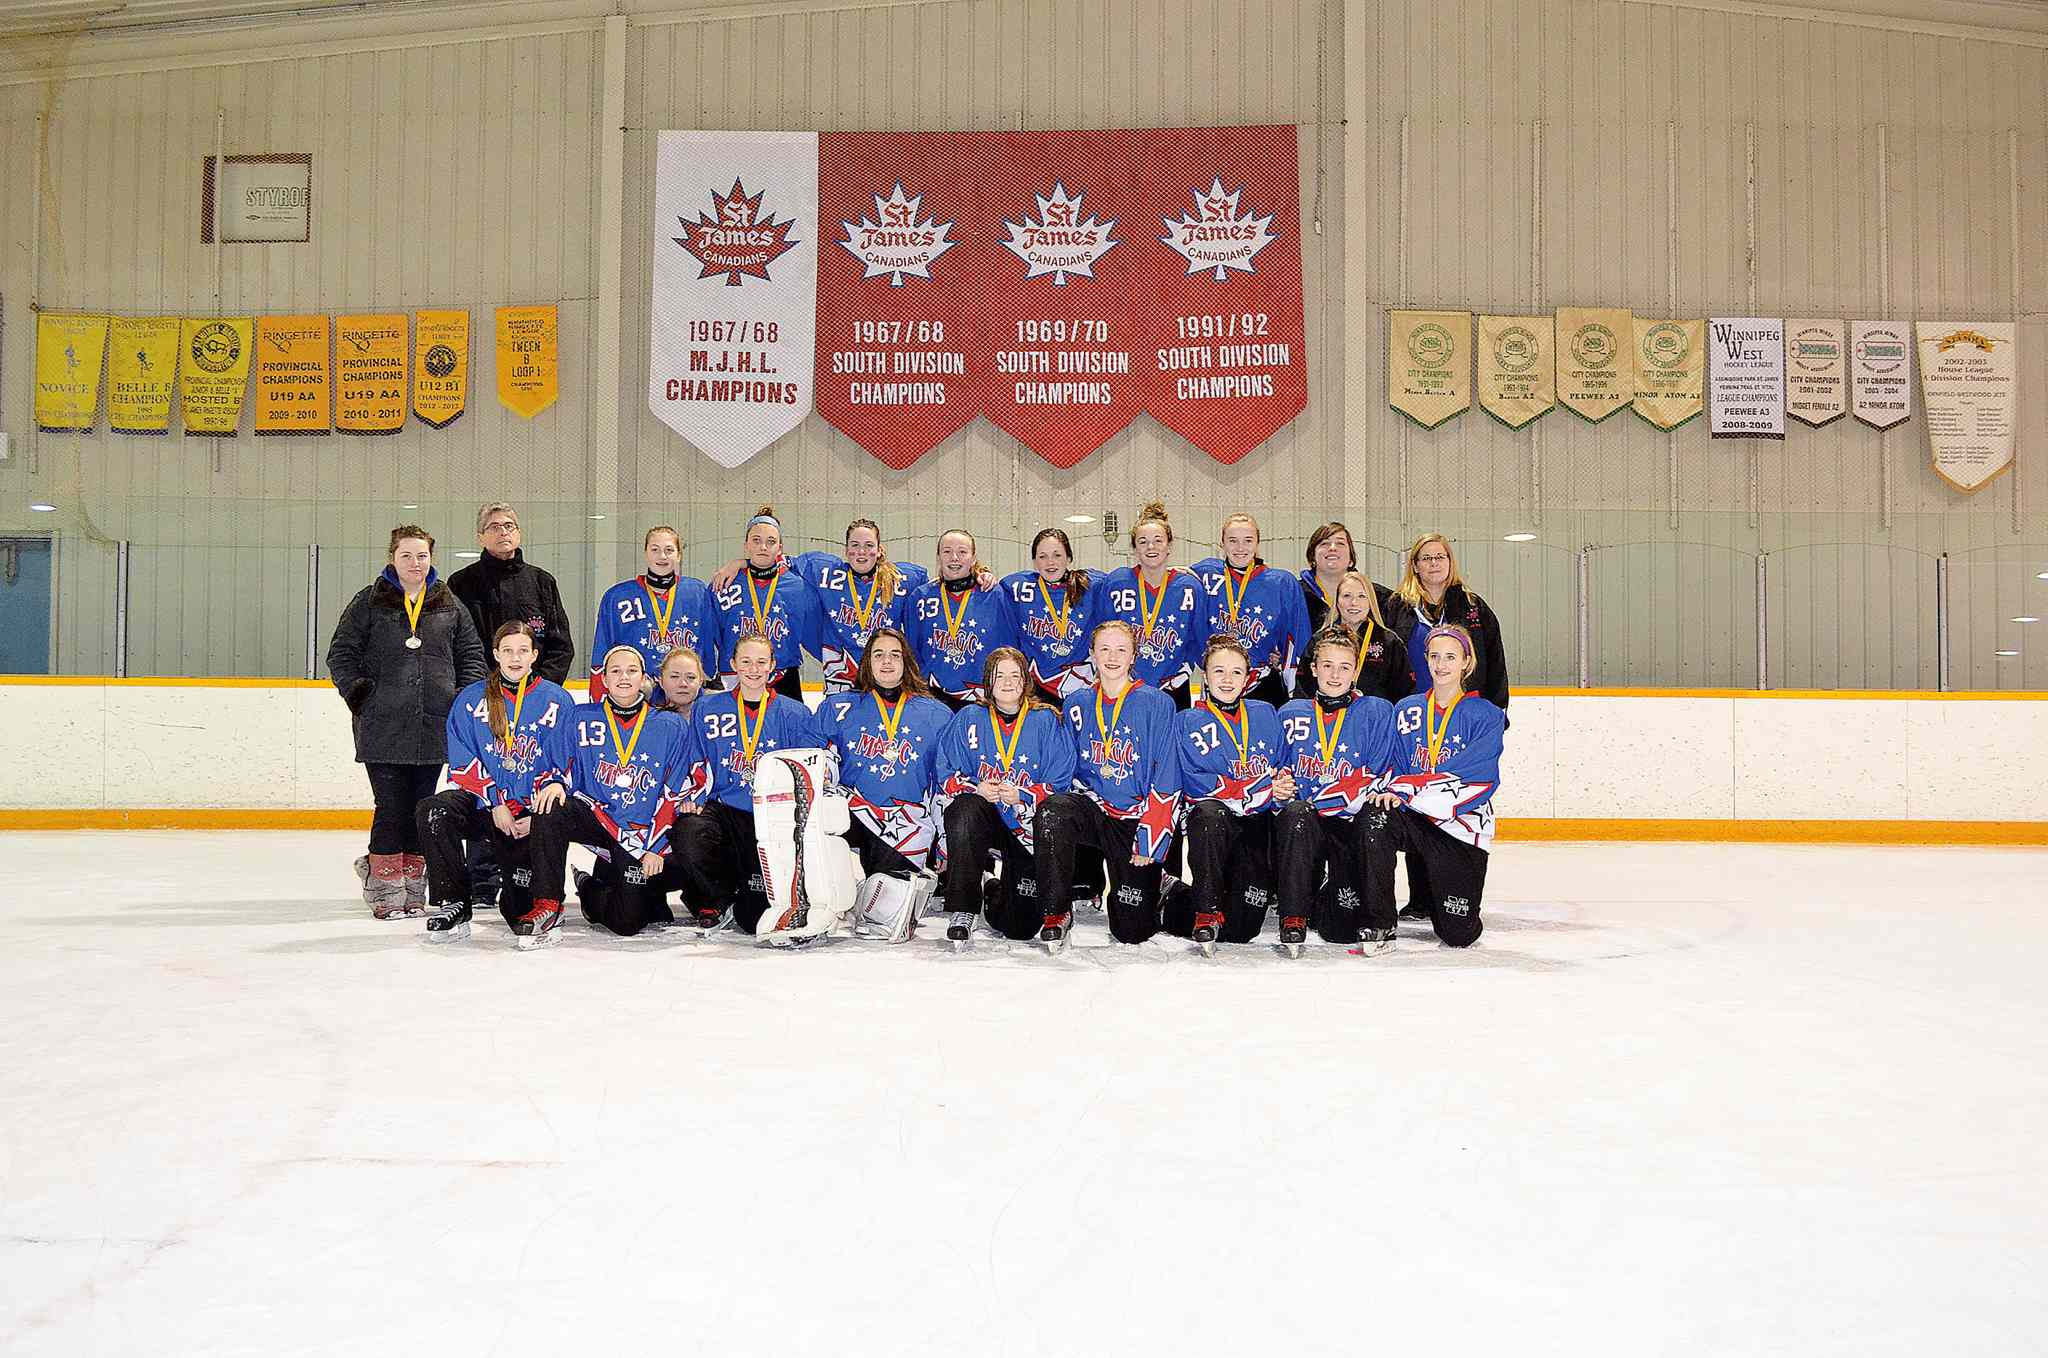 The Magic U14AA ringette team won silver in the Manitoba Ringette Association's AA Provincials. (Front, from left) Kennedy Vancoughnett, Aryn Oakley, Lyndsey Sims (assistant coach), Makayla Dyck, Belle Groen, Savannah  Aitken, Meagan Smith, Janessa May, Ashley Gallant, and Cierra Melnyk. (Back row, from left) Teresa Wells (assistant coach), D'Arcy Bain (assistant coach), Mackenzie Eisbrenner, Brett Van Nieuw Amerongen, Carleigh Petersen, Amy  Slobodian, Harley Friesen, Rikki Frost-Hunt, Jaclyn Keddie, Laura Edmonds (assistant coach), Erin Sarahs (assistant coach), and Kelly Sims (head coach).